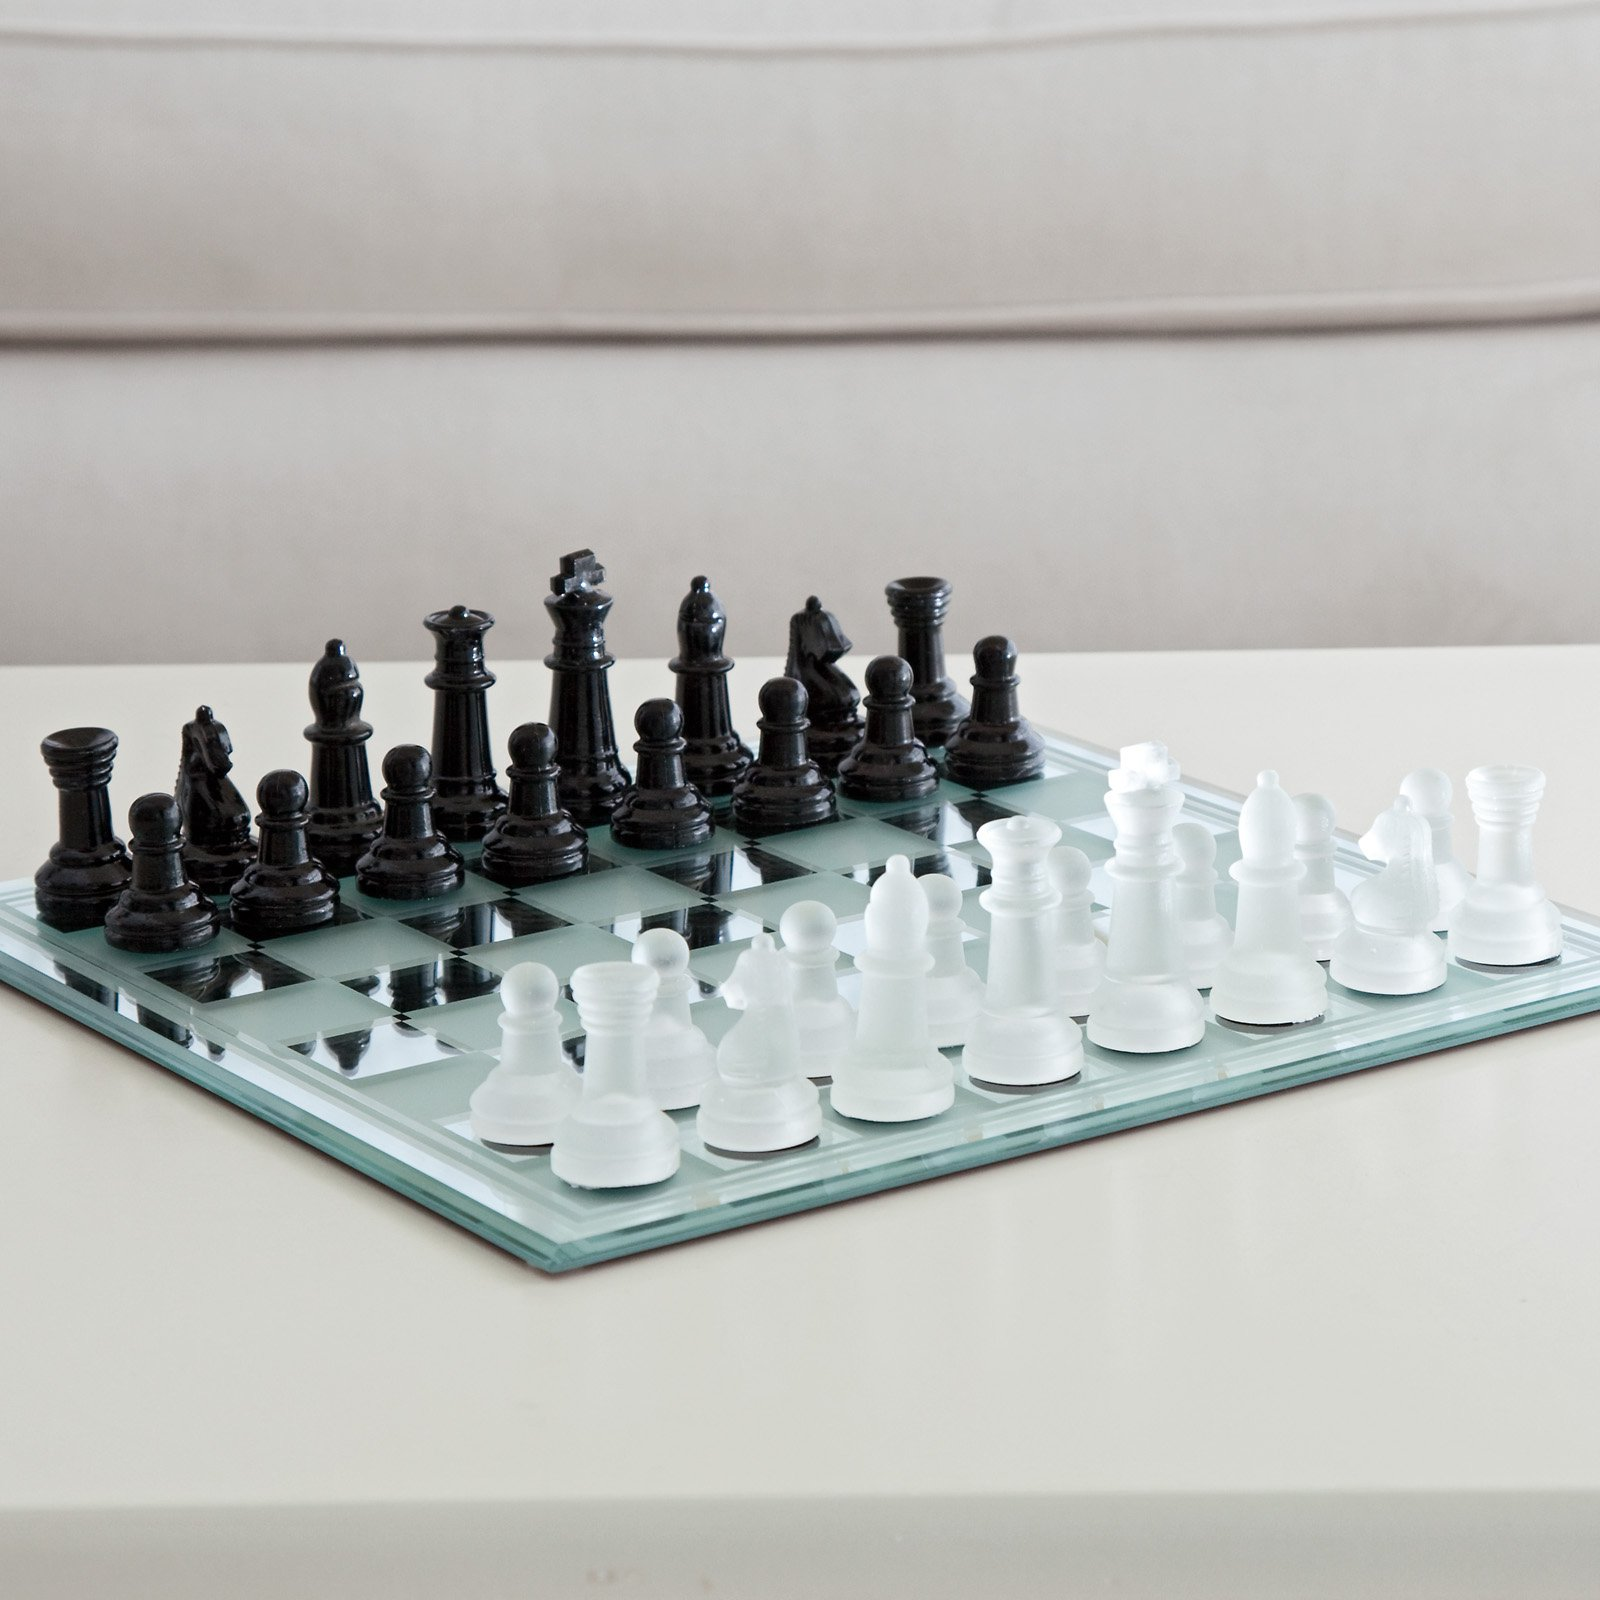 Black and White Mirror Board Chess Set by CHH Quality Products Inc.